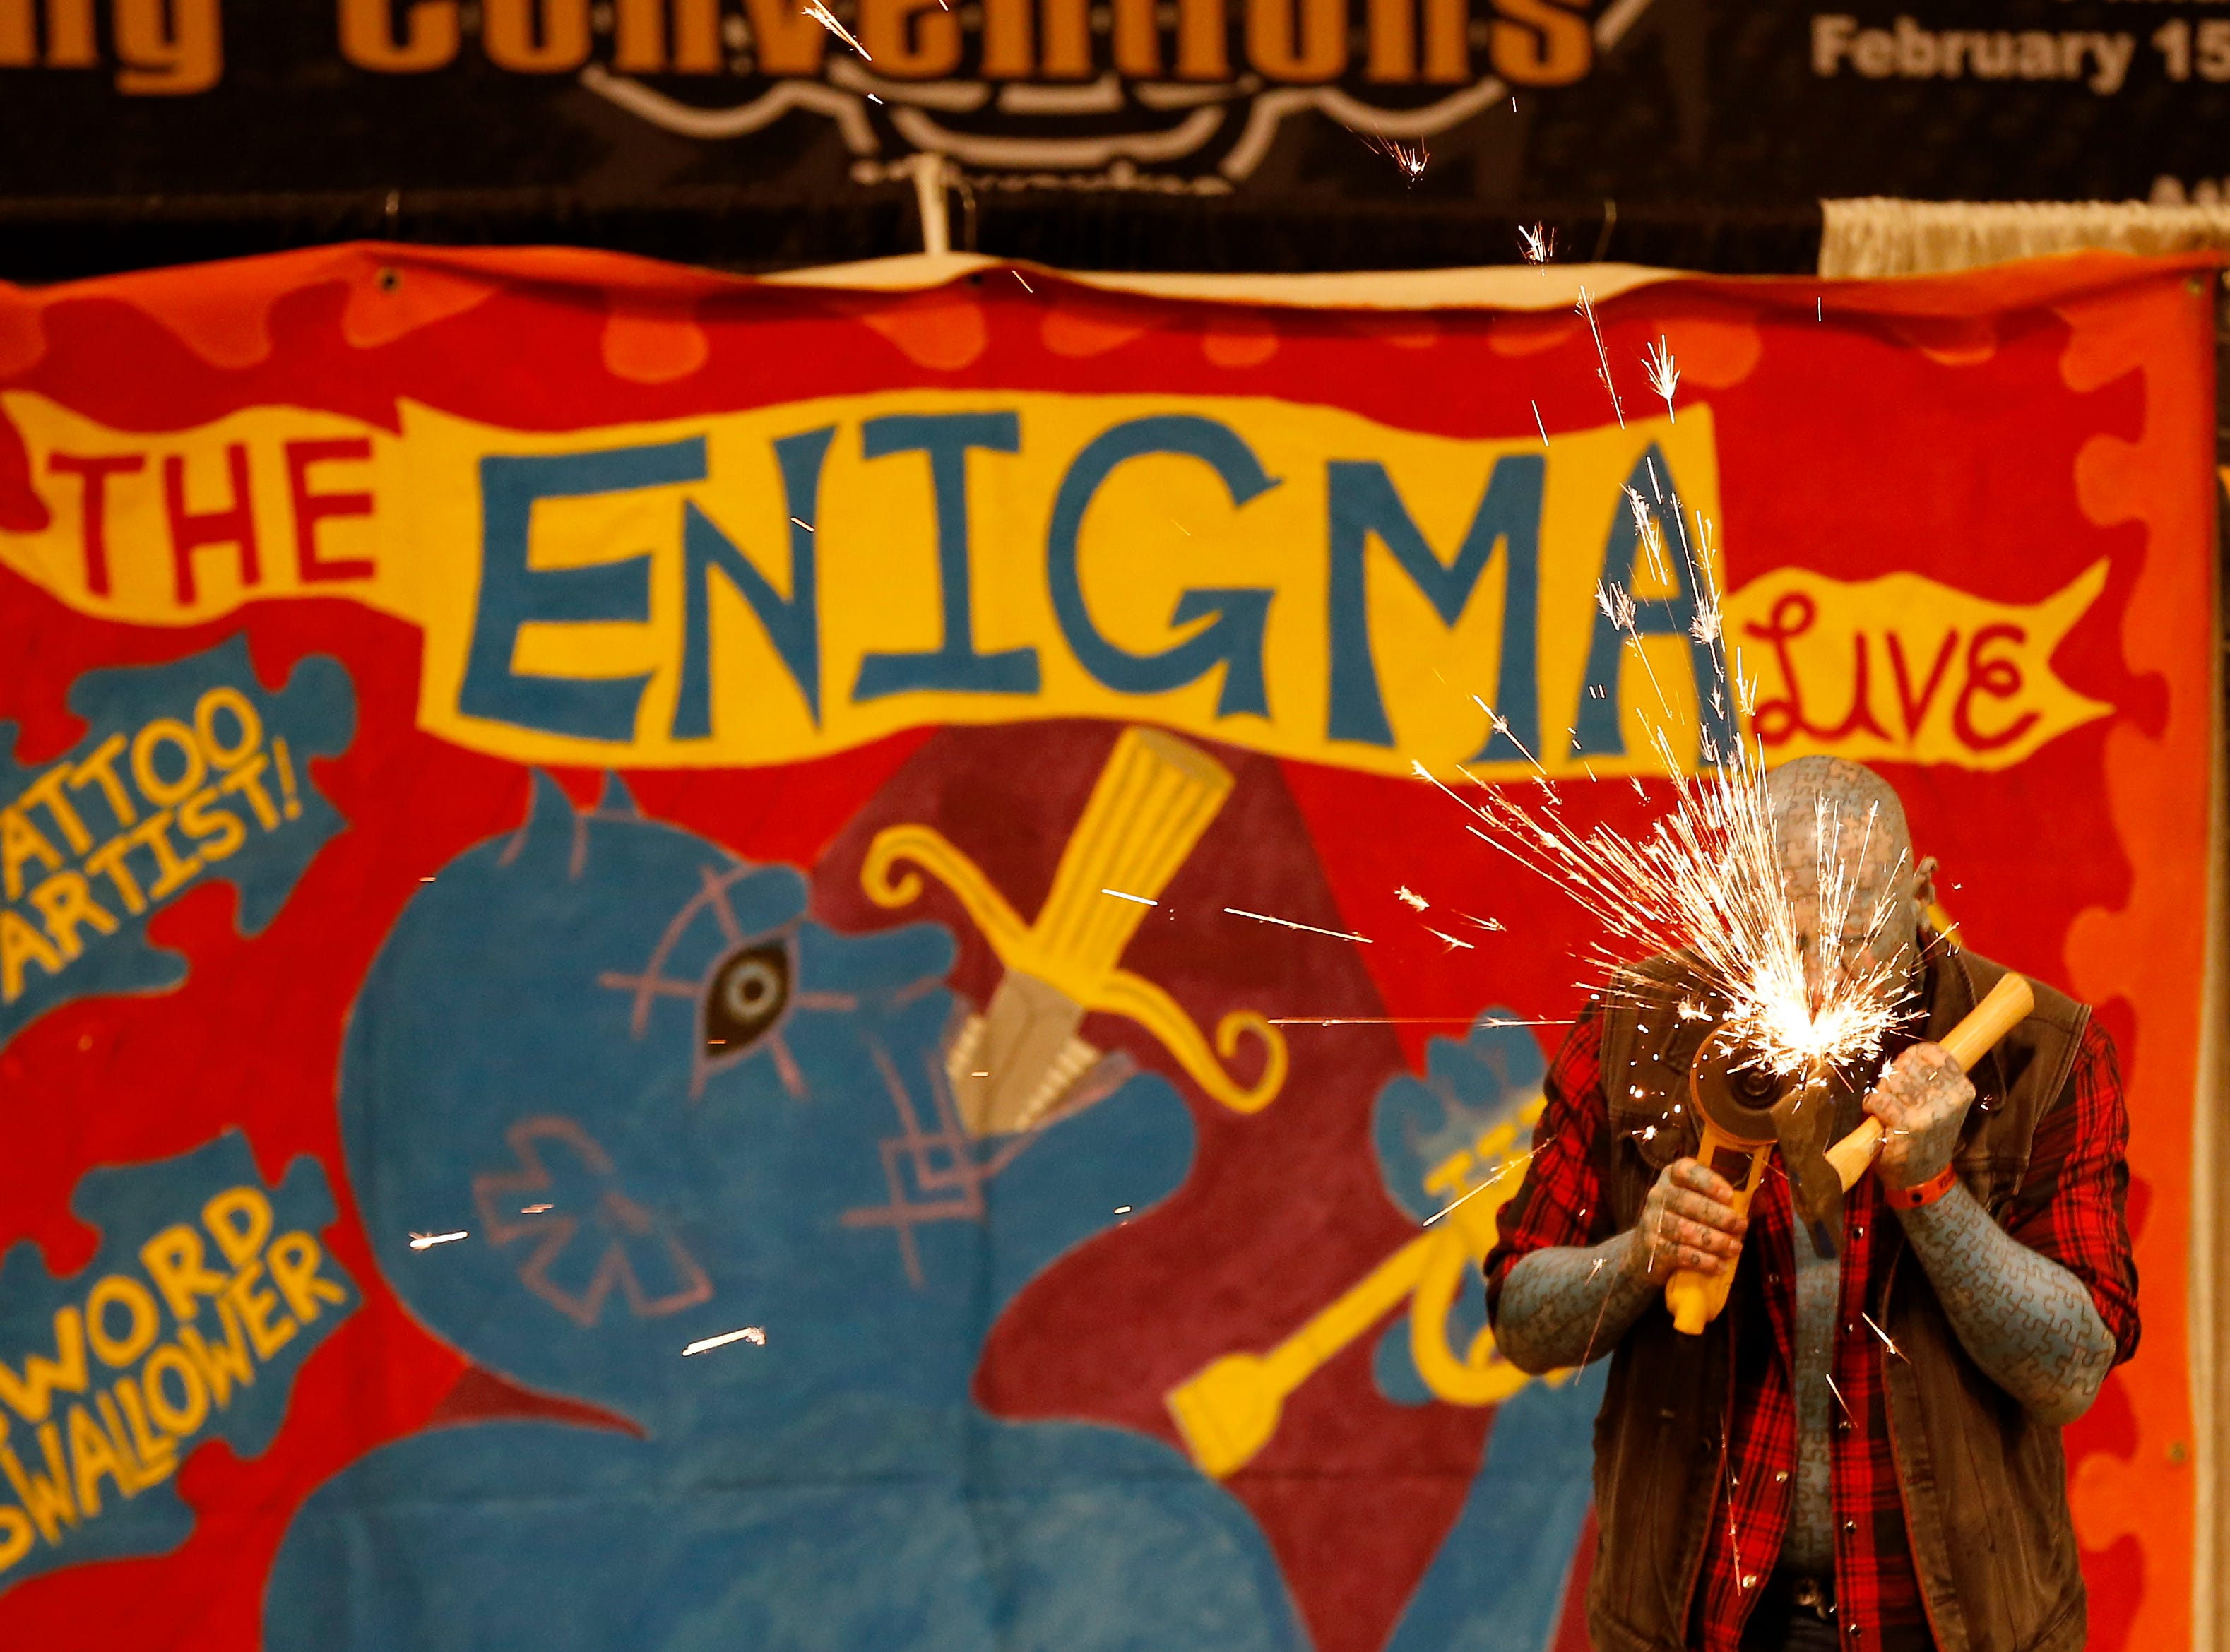 The Enigma performs during the Greater Cincinnati Tattoo Arts Convention at the Northern Kentucky Convention Center in Covington, Ky., on Friday, Sept. 7, 2018.